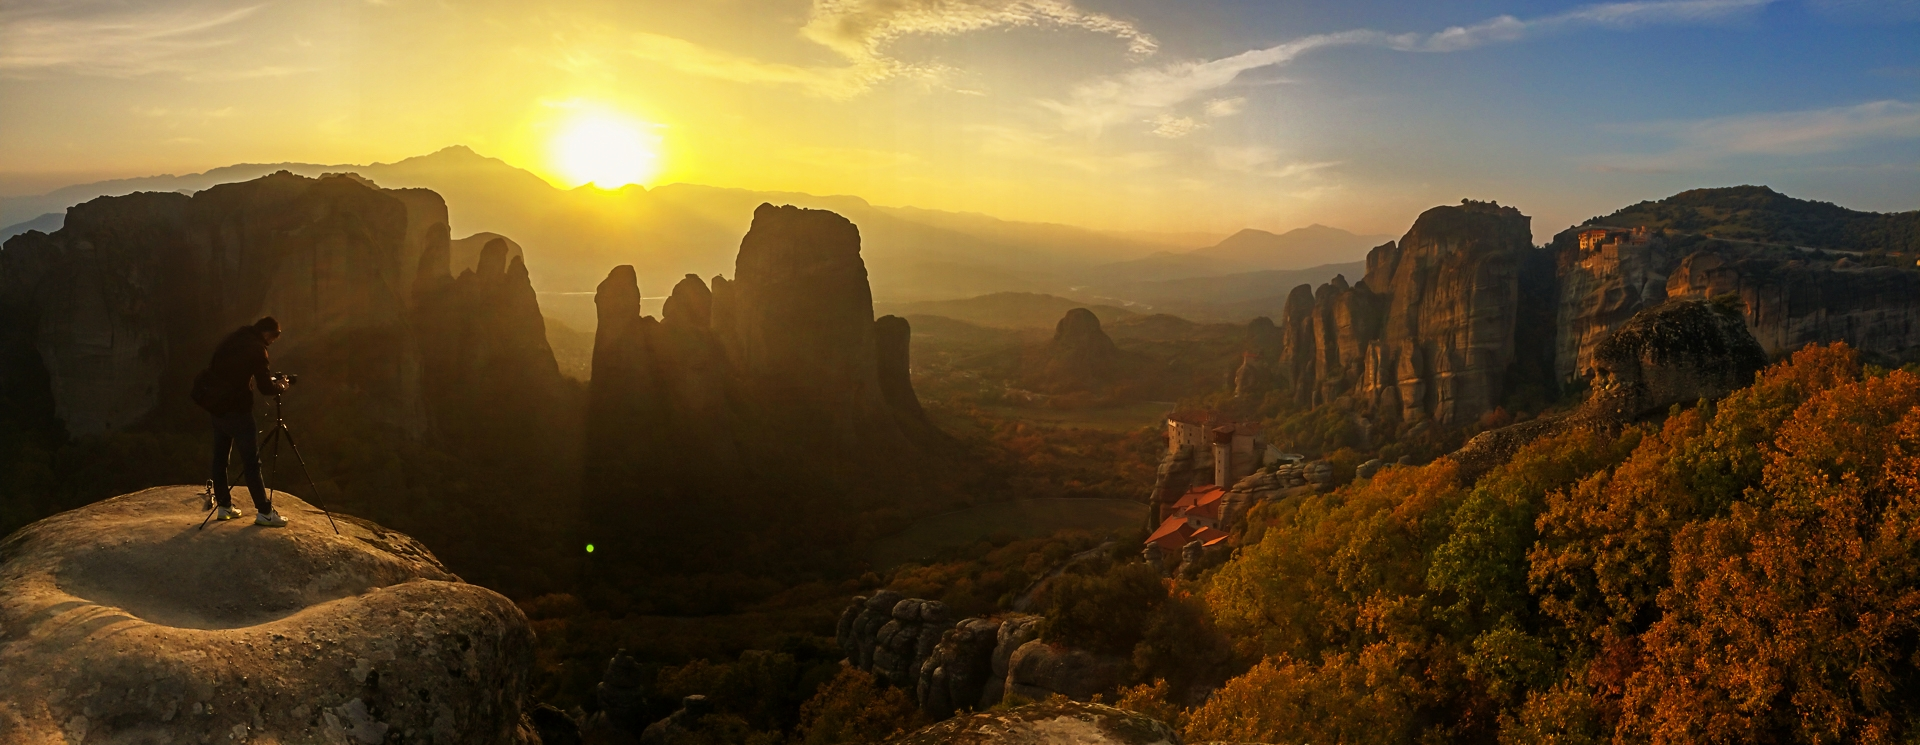 Photographing sunset over the Meteora monasteries during our Landscape Photography Workshop to Meteora and the Pindos Mountains in Greece, 2016;